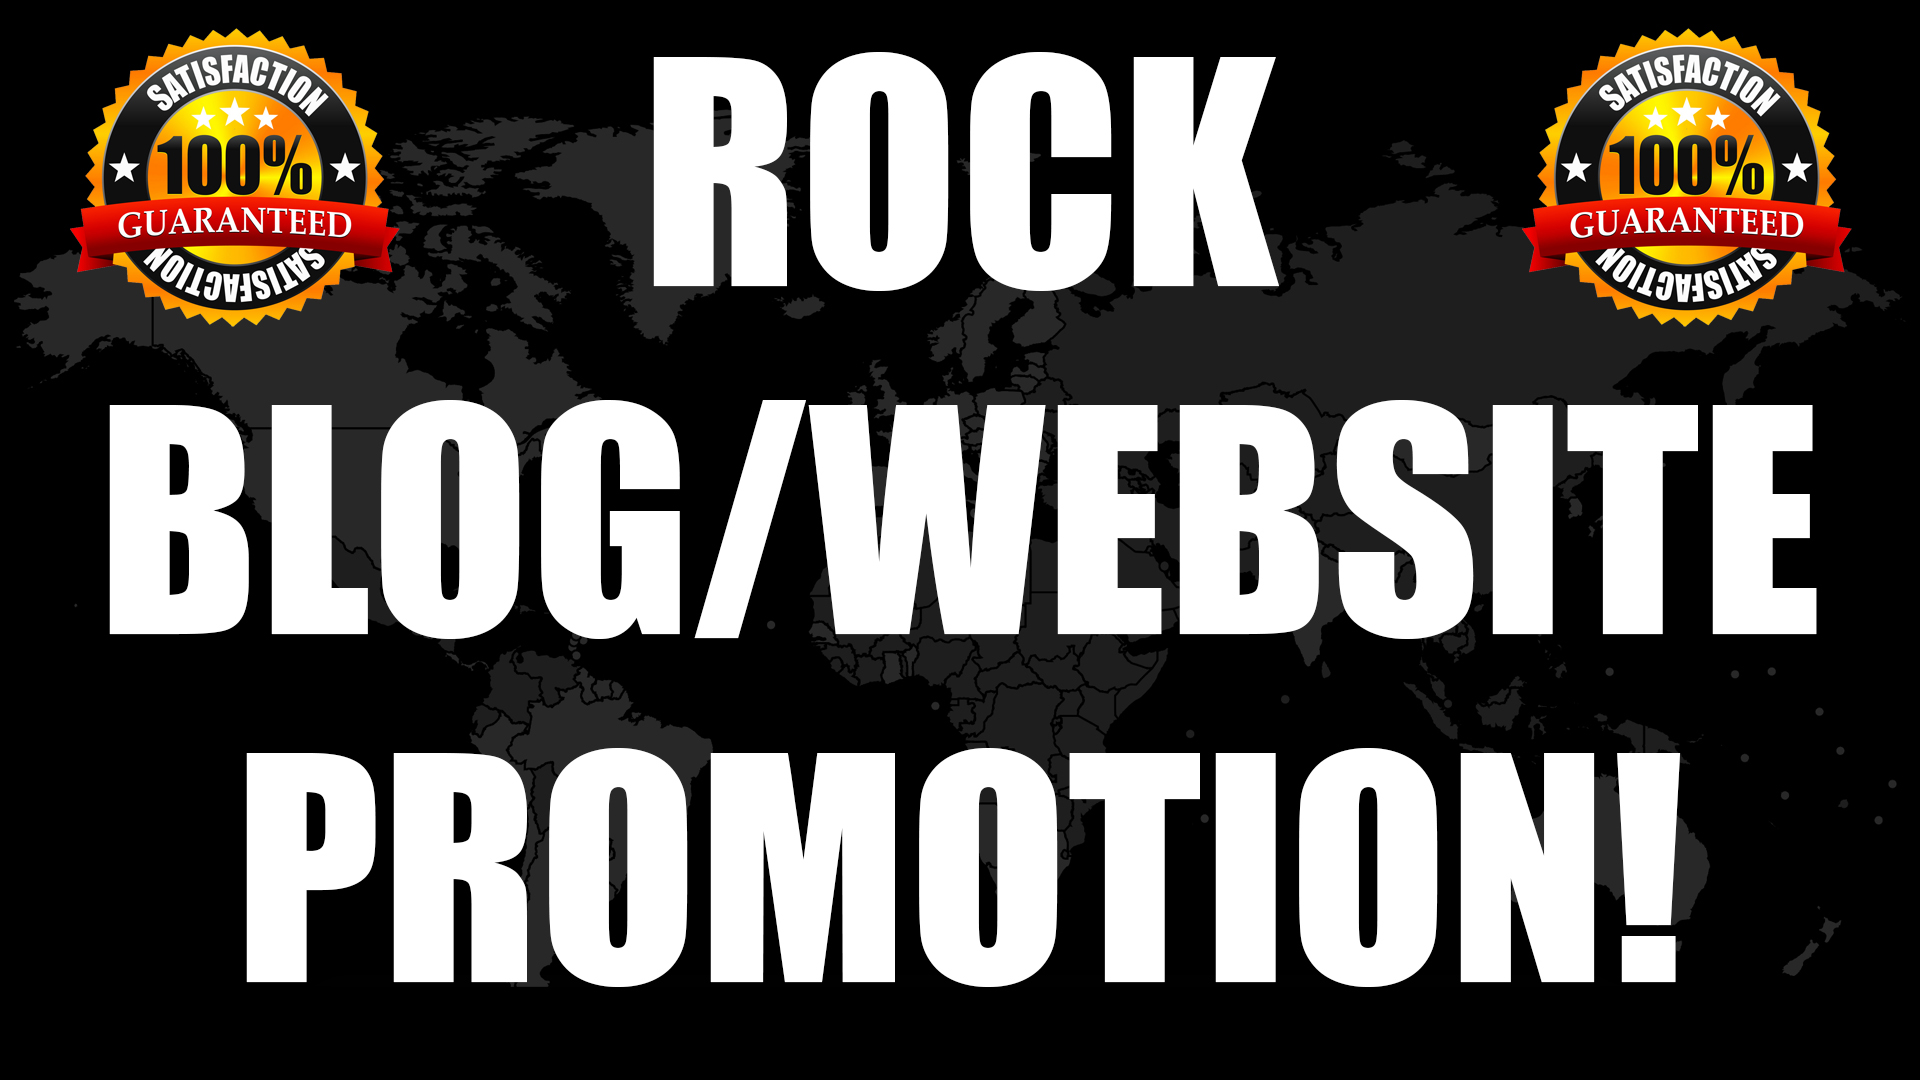 We'll Submit Your Songs To 50 Top Rock/Metal Music Blogs And Websites